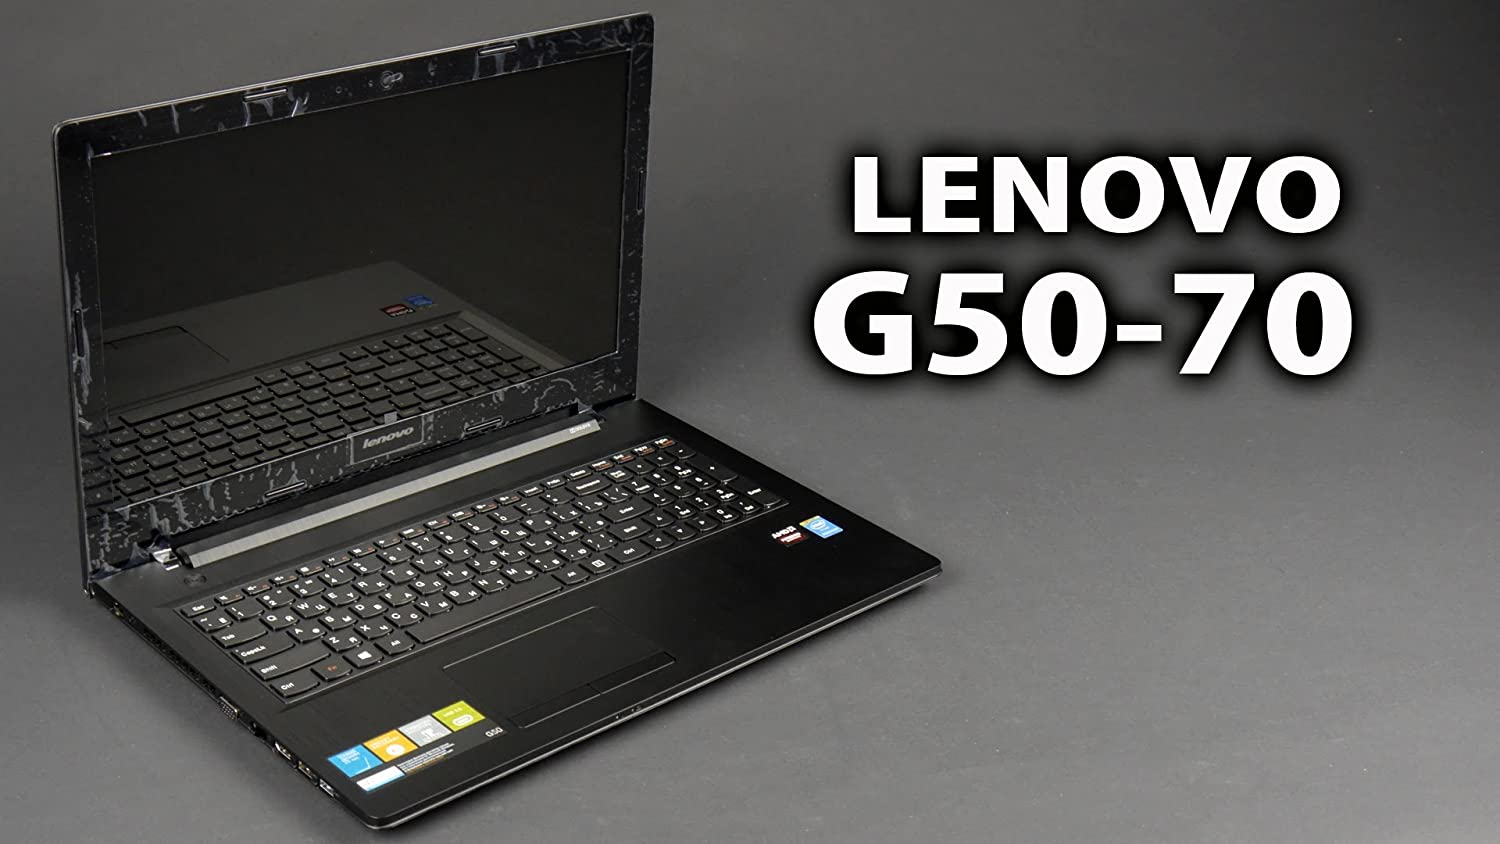 Lenovo G40 80 Notebook 80e400vbid Buy G50 70 59 422417 156 Inch Laptop Core I3 4030u 4gb 1tb Win 81 2gb Graphics Black Online At Low Prices In India